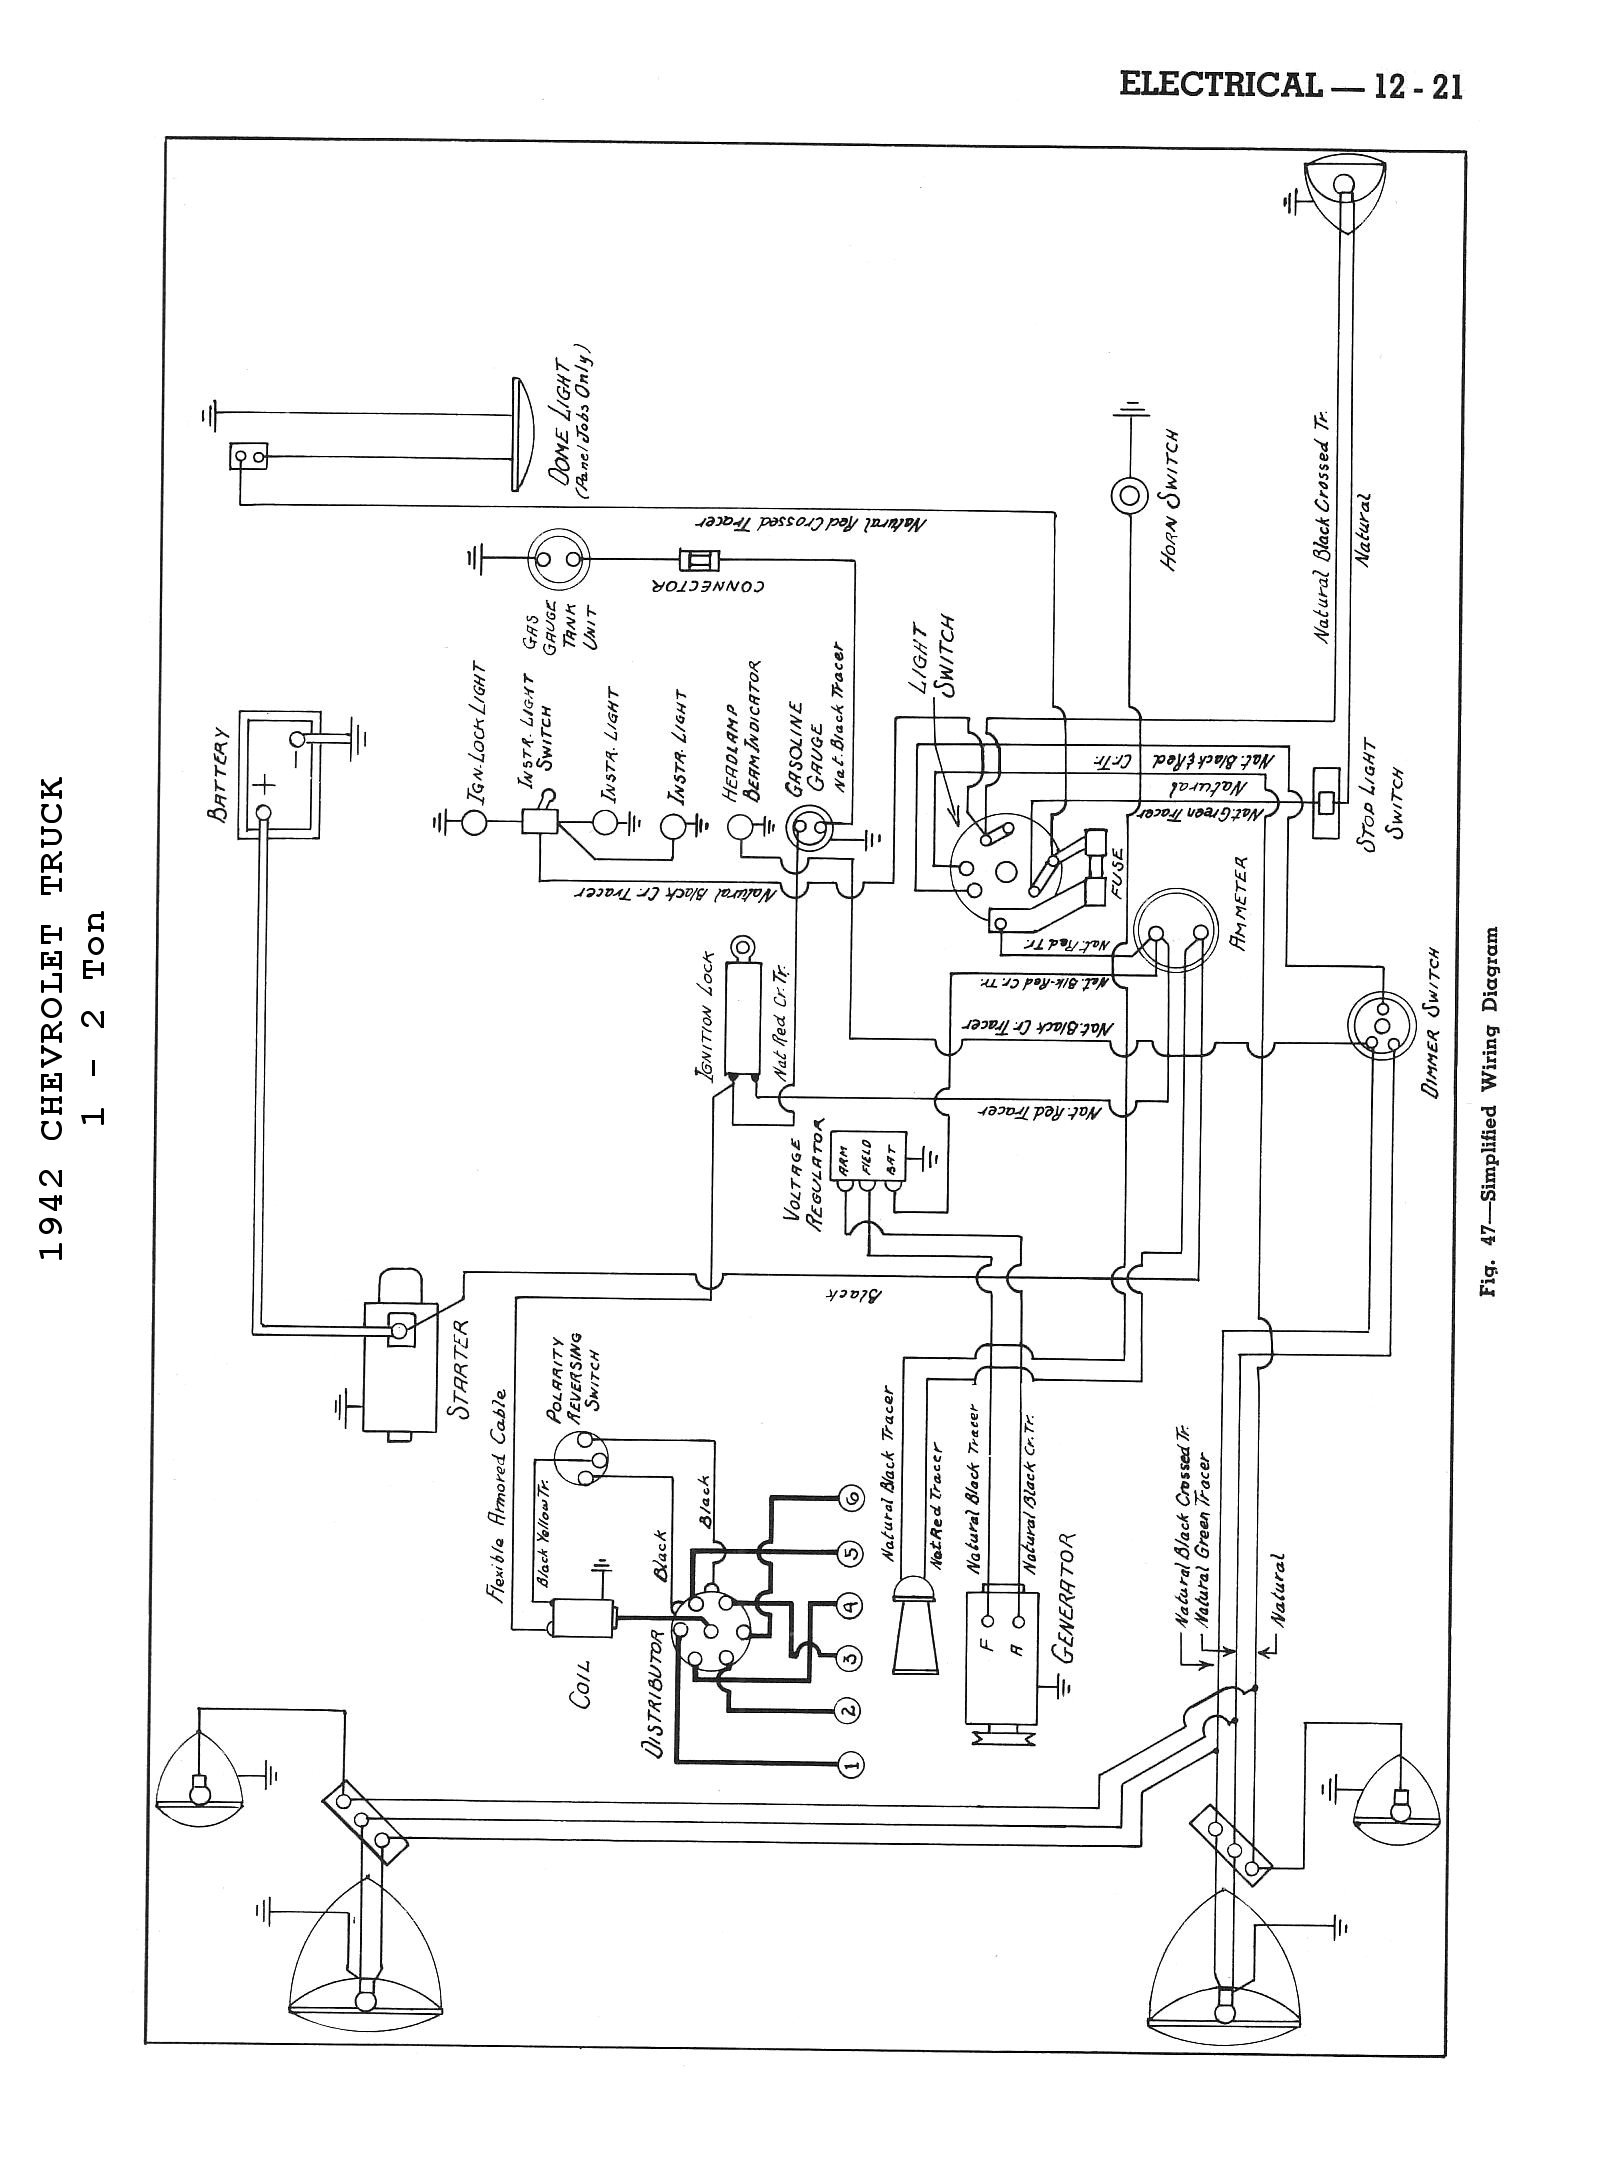 1951 Chevy Bel Air Wiring Diagram Opinions About 1956 Dash Styleline Deluxe Schematics Diagrams U2022 Rh Parntesis Co 1950